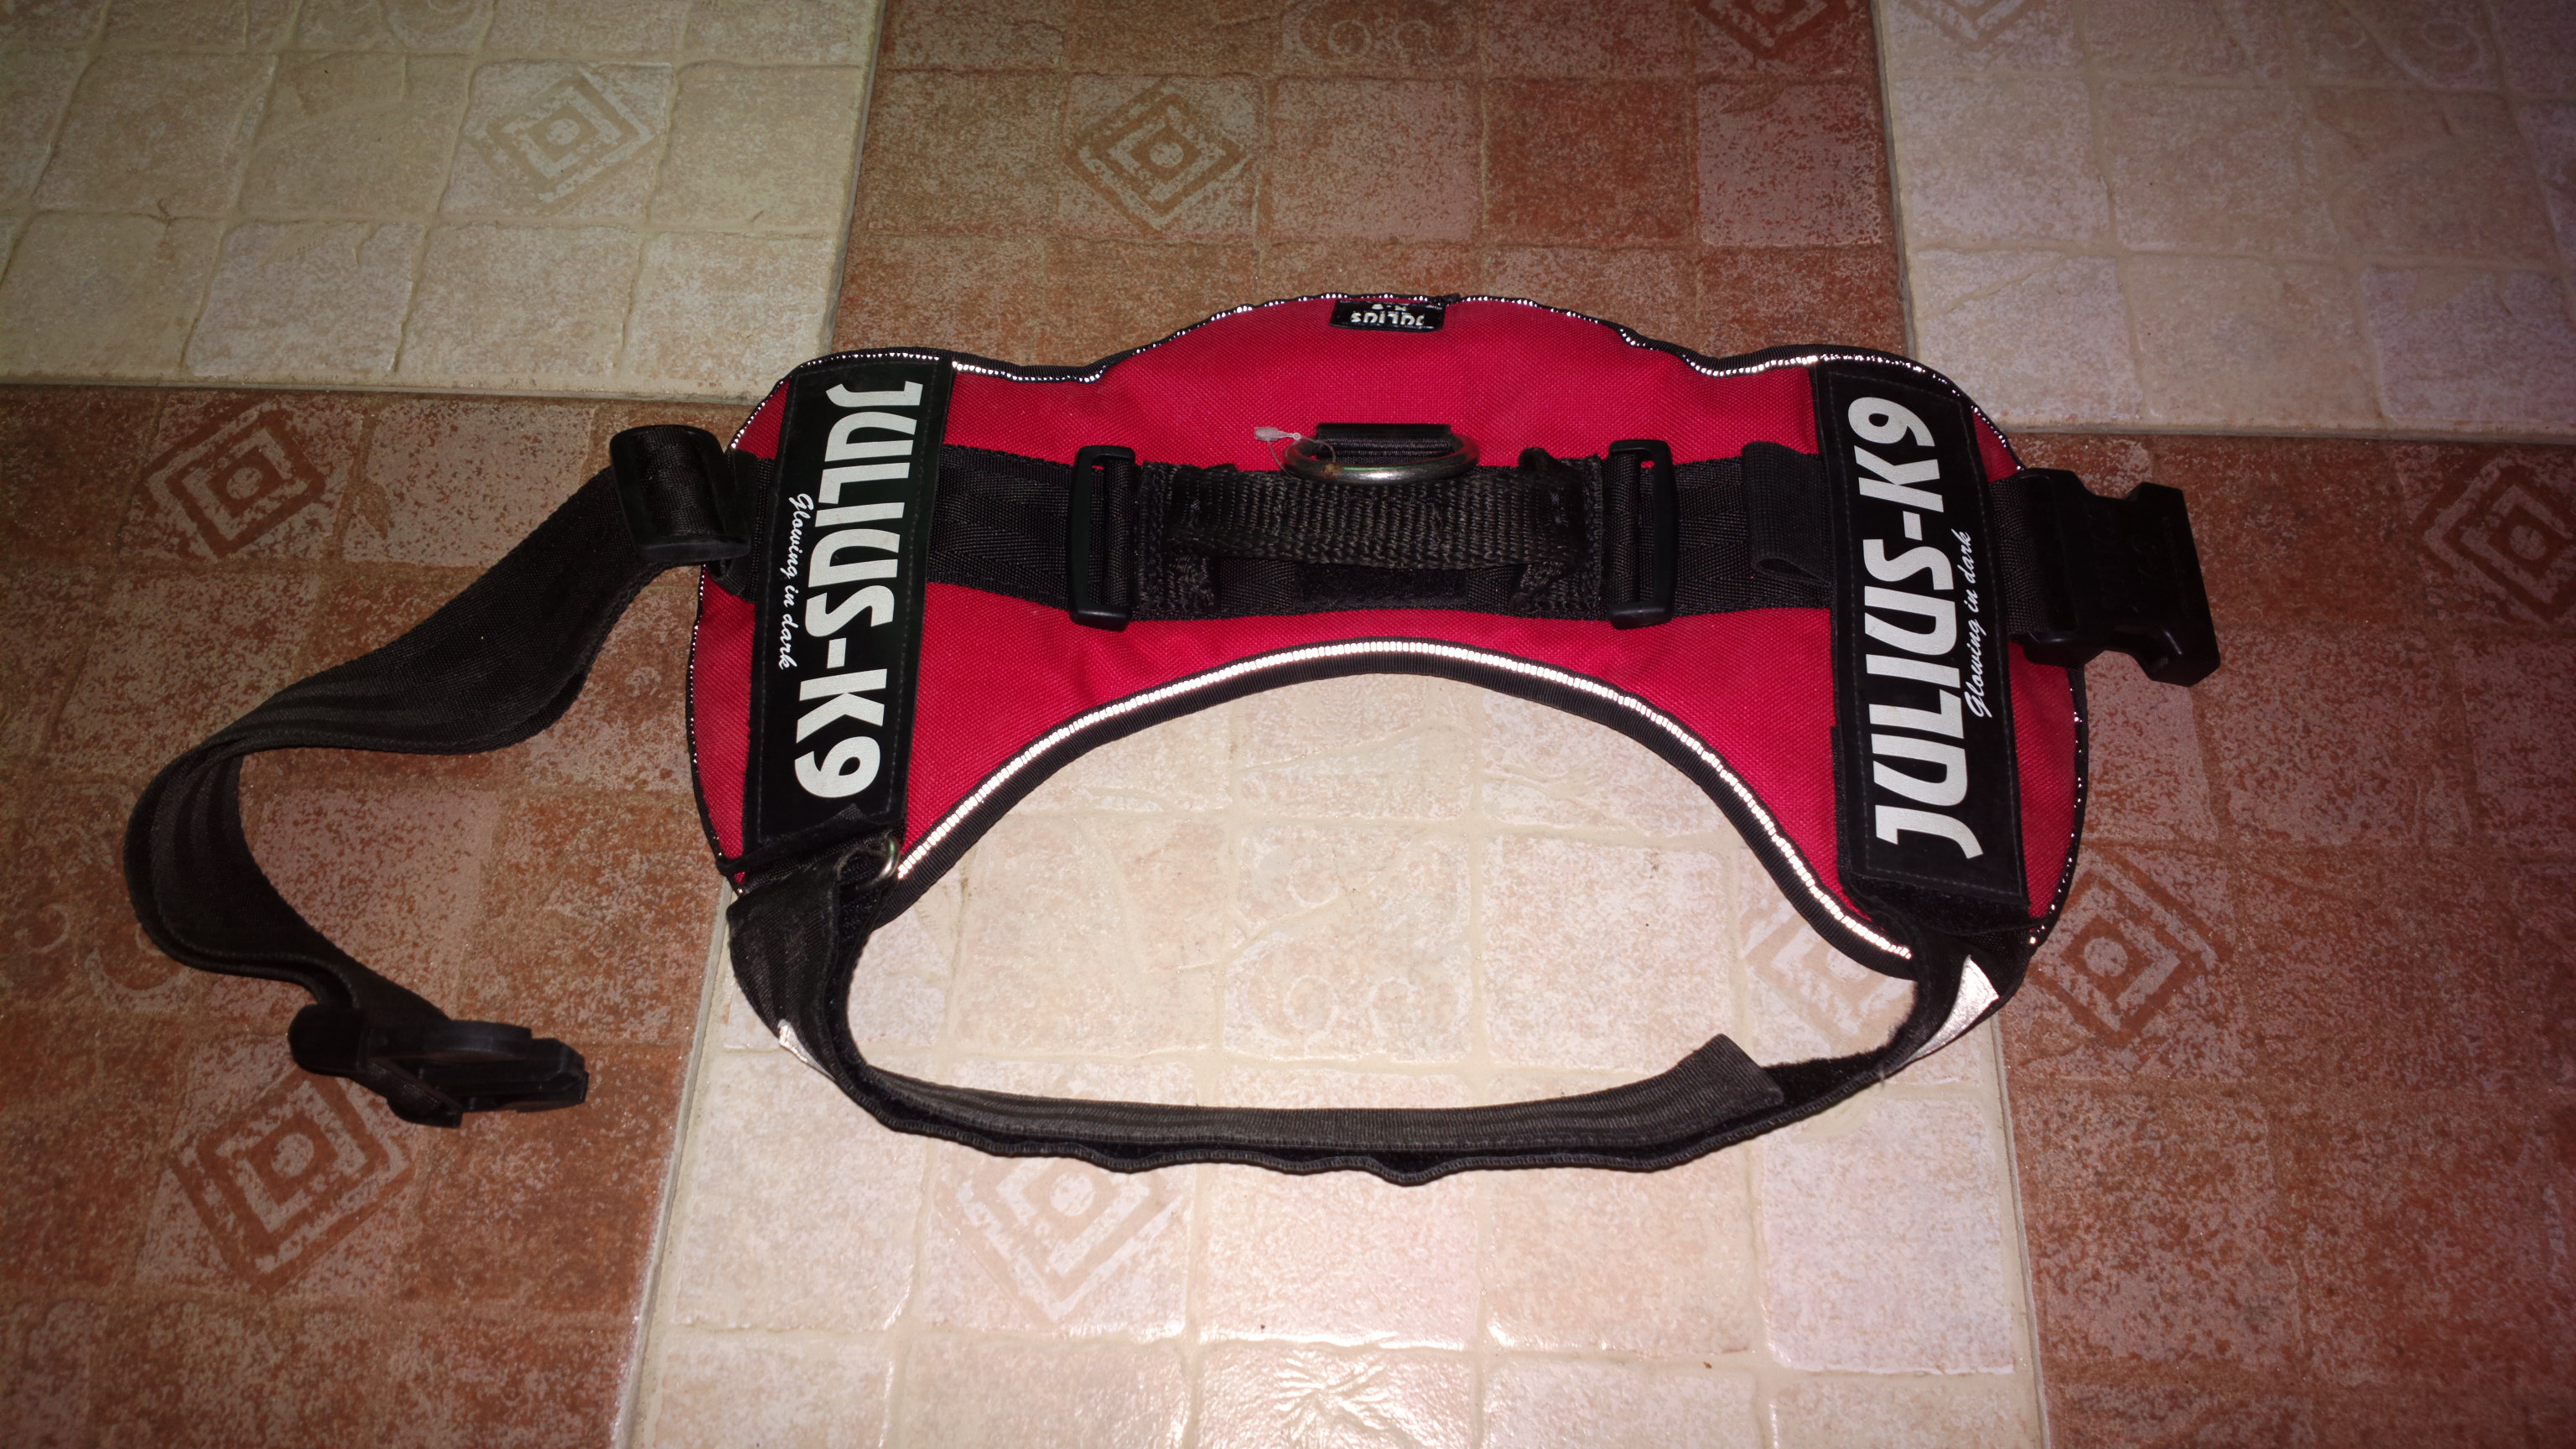 Julius K9 Harness from Germany, Size 2 for big Breed